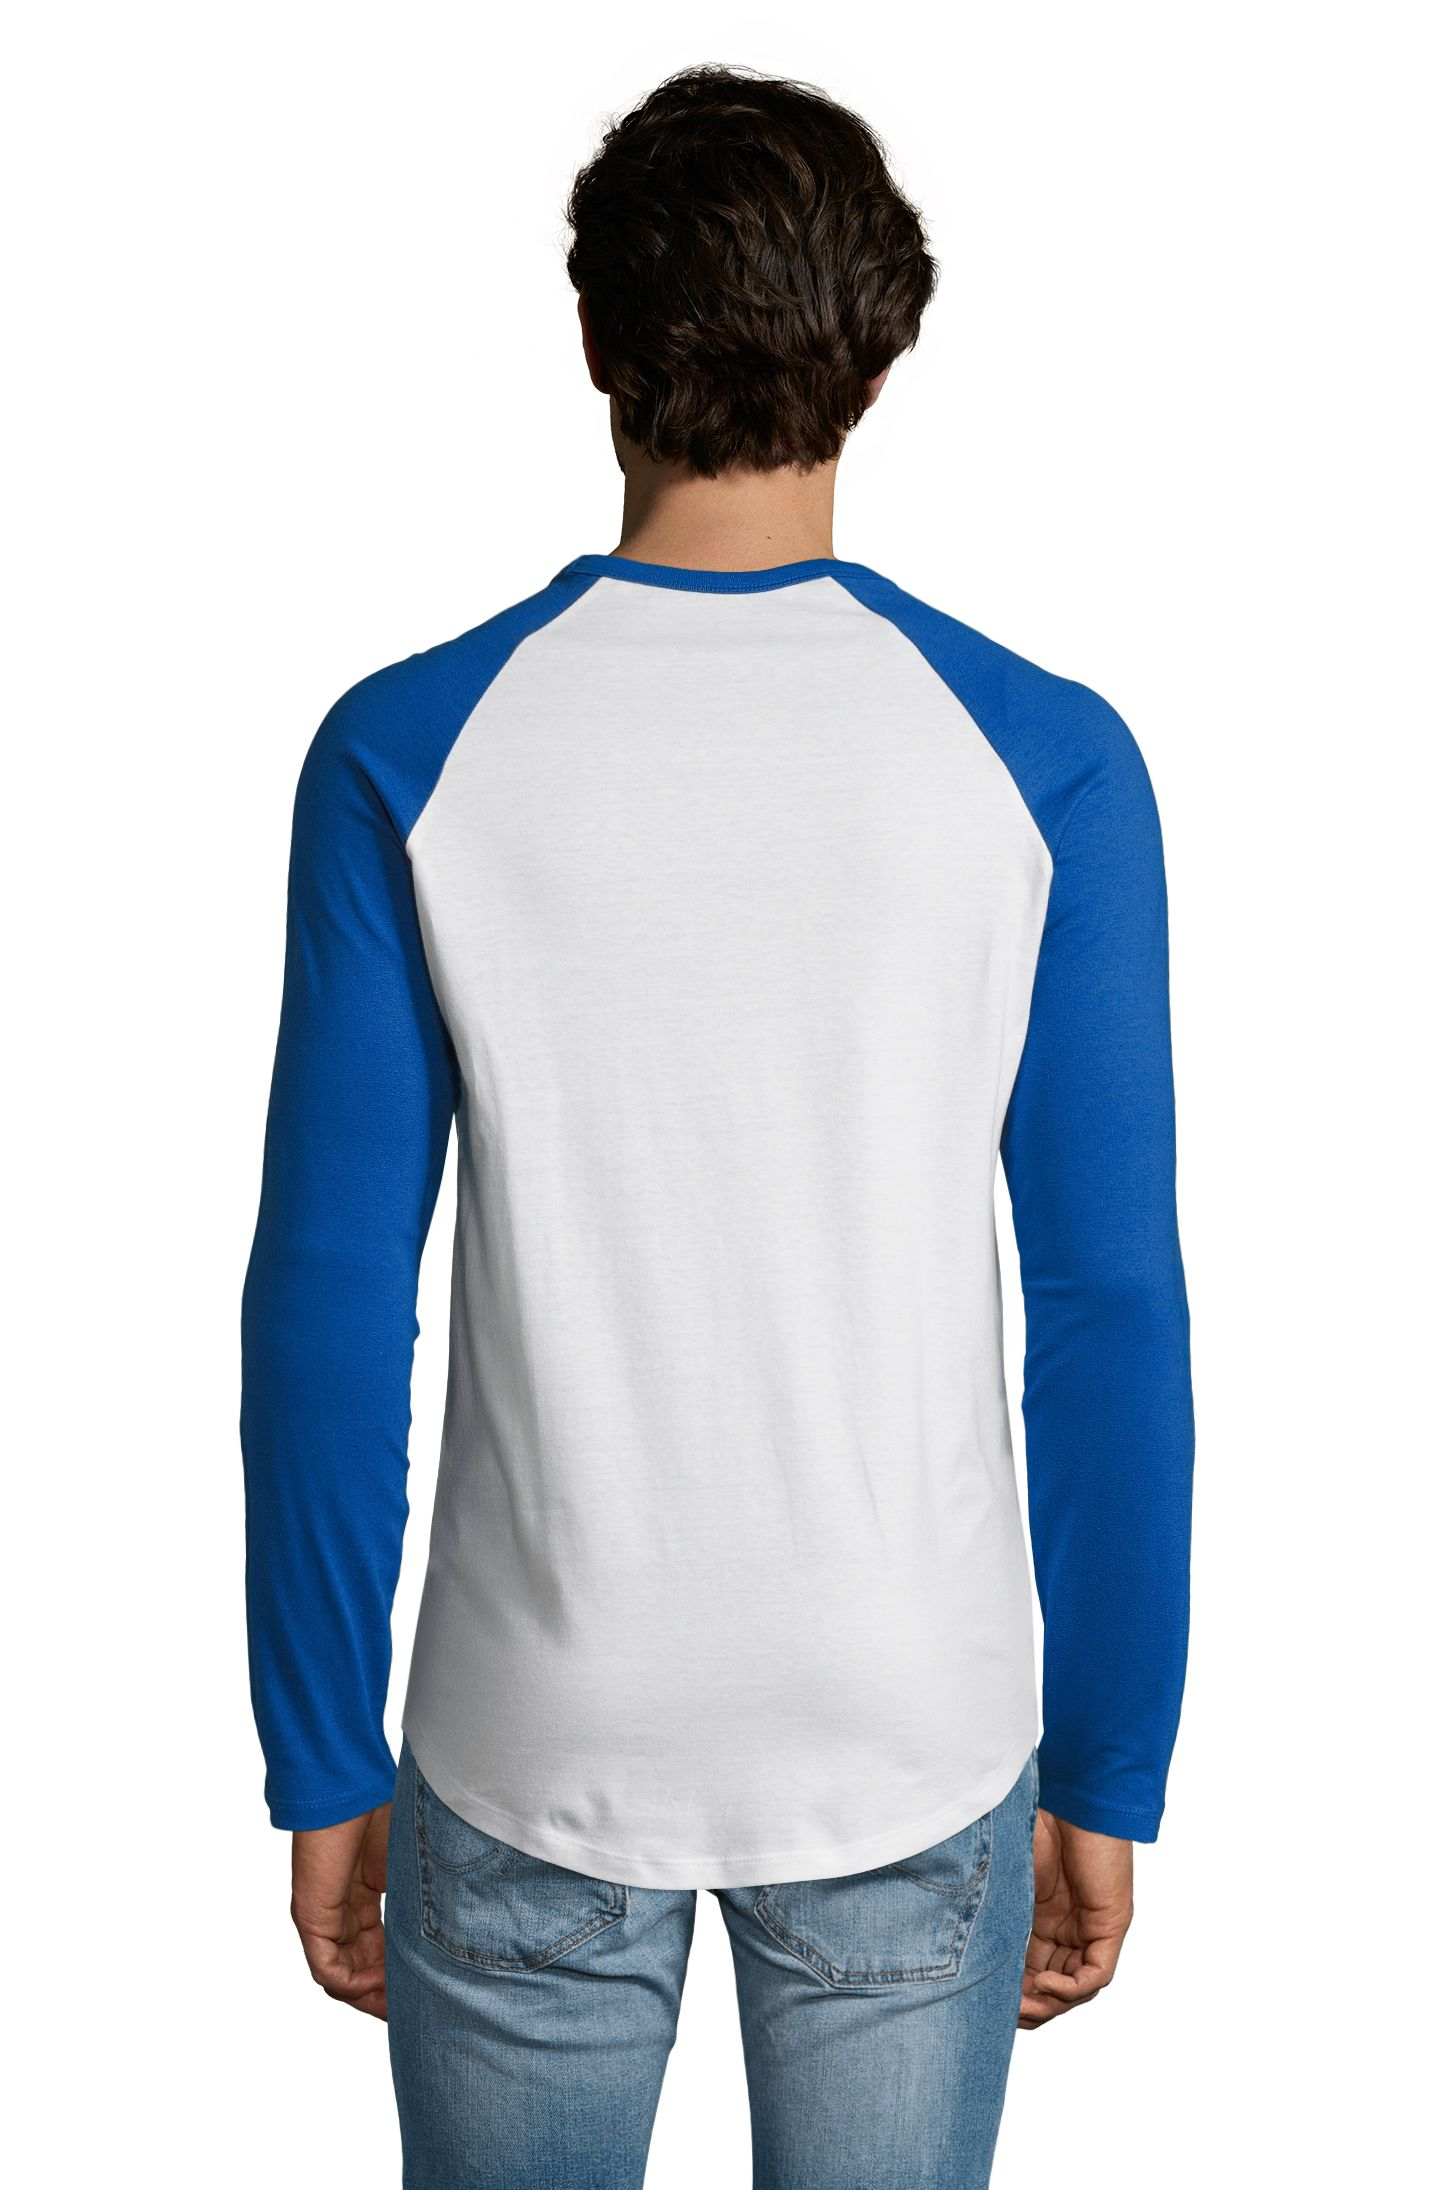 907 - White / Royal blue